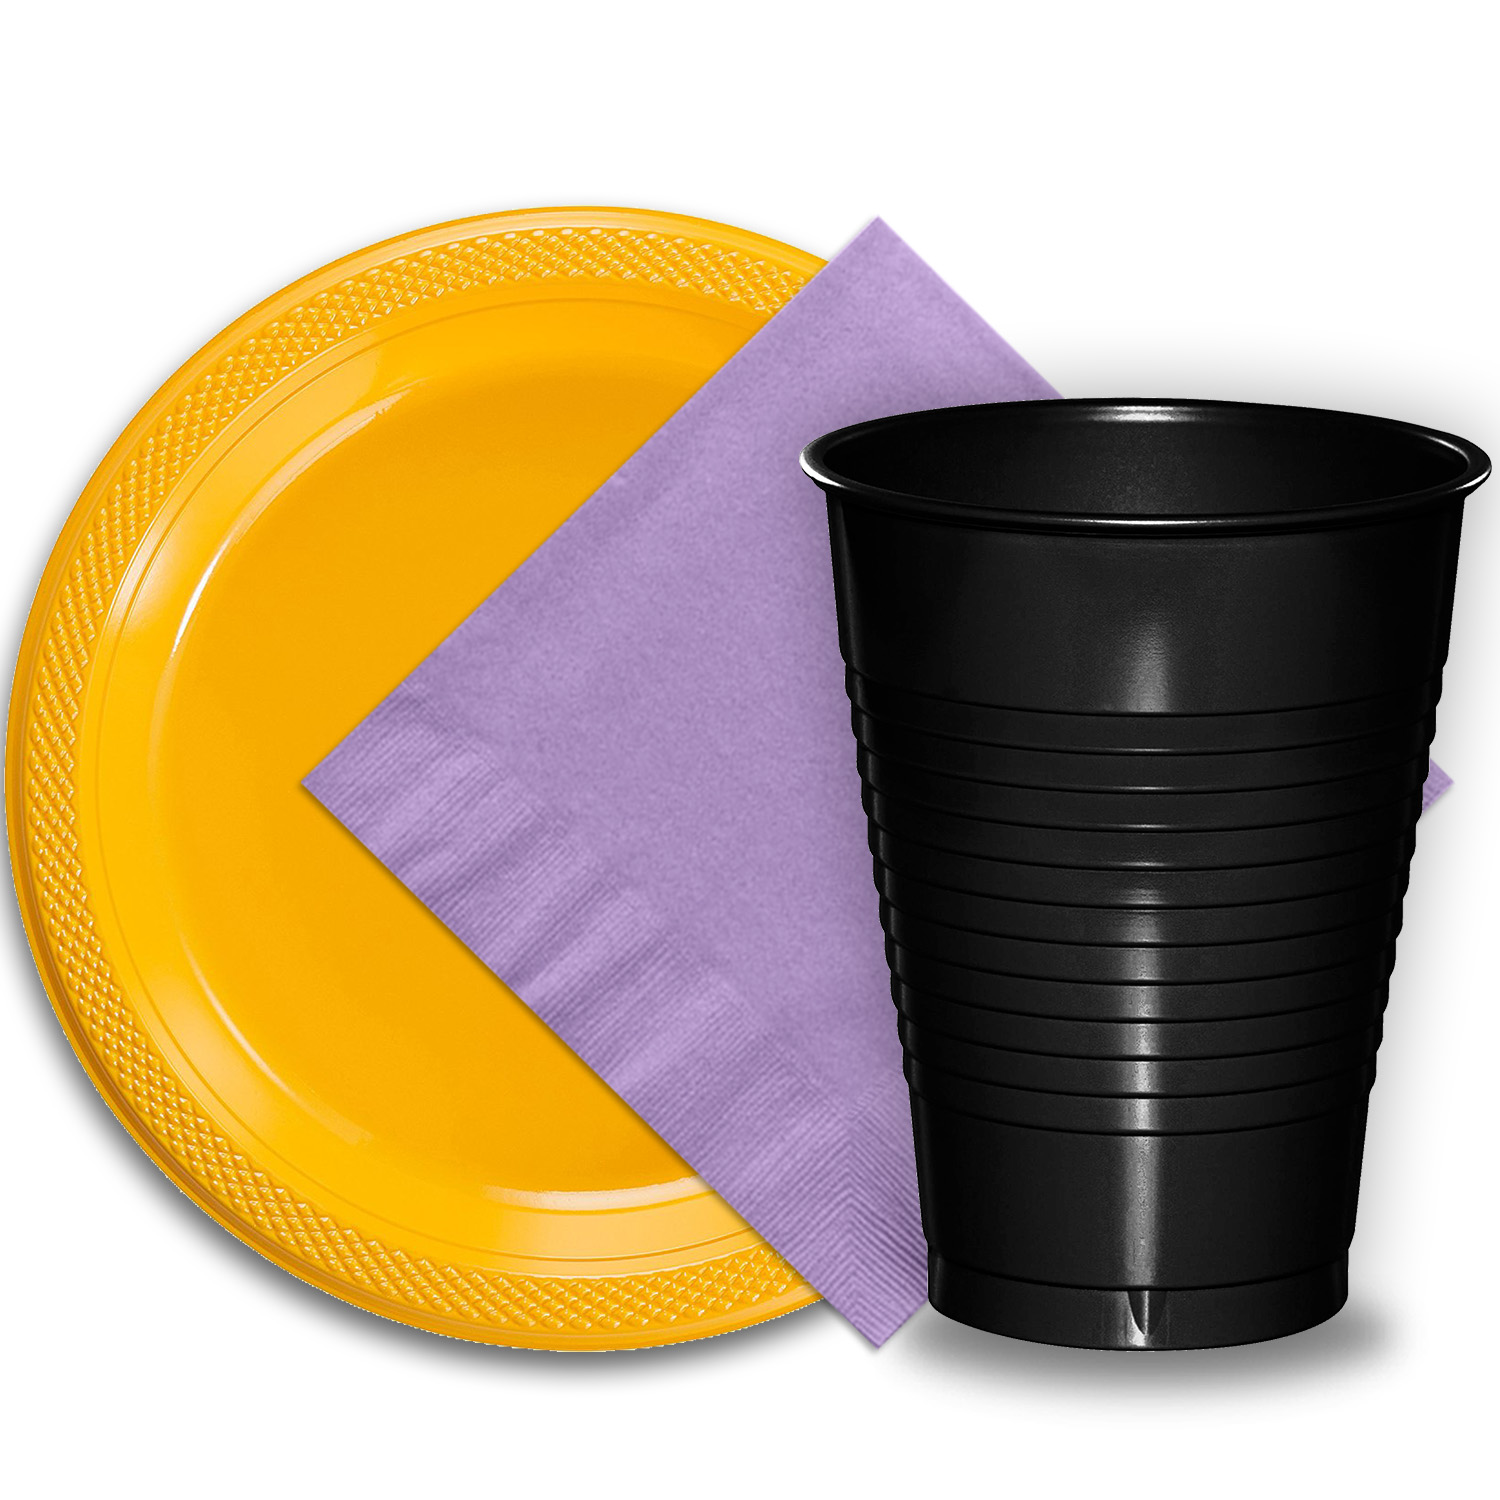 """50 Yellow Plastic Plates (9""""), 50 Black Plastic Cups (12 oz.), and 50 Lavender Paper Napkins, Dazzelling Colored Disposable Party Supplies Tableware Set for Fifty Guests."""